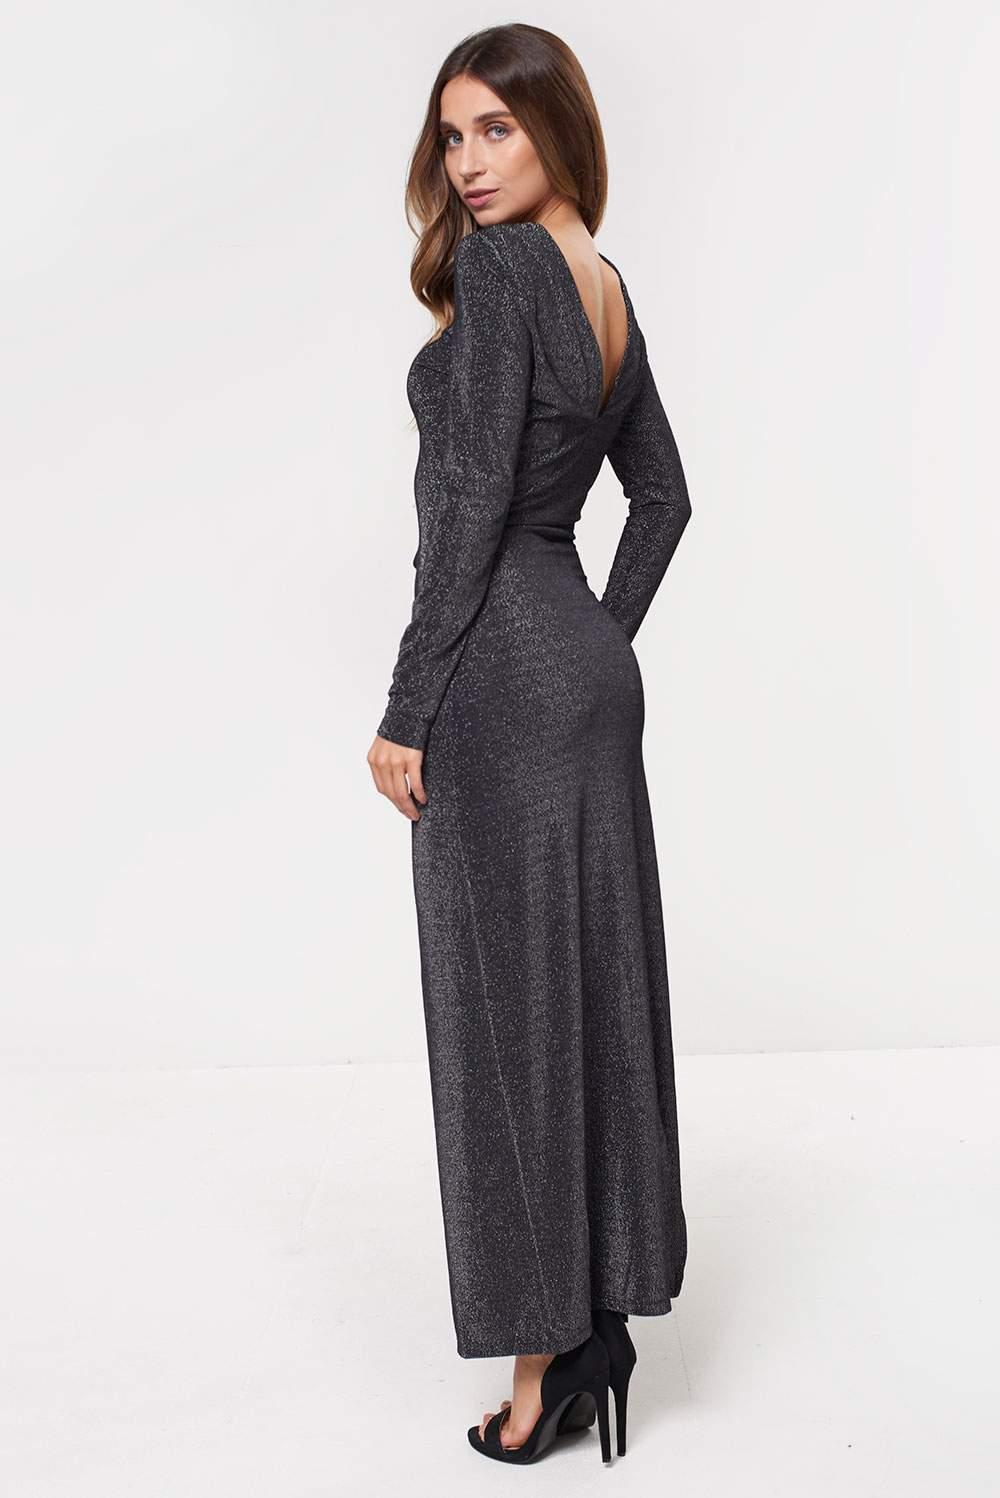 Vila Ibbo Long Sleeve Maxi Dress in Silver Glitter  e8692a50a